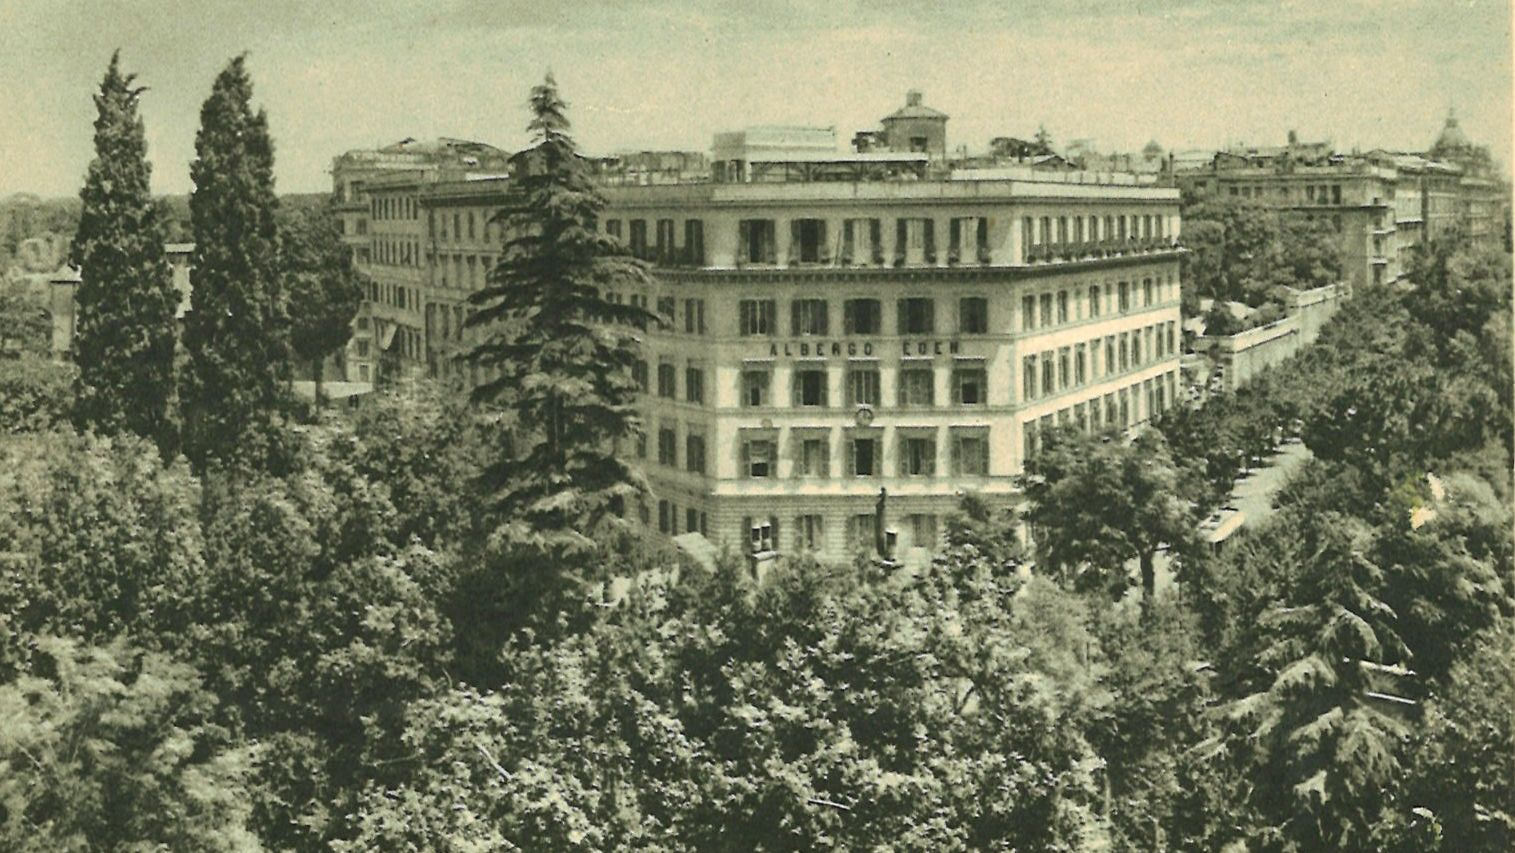 130 Years of History in a Roman Hotel